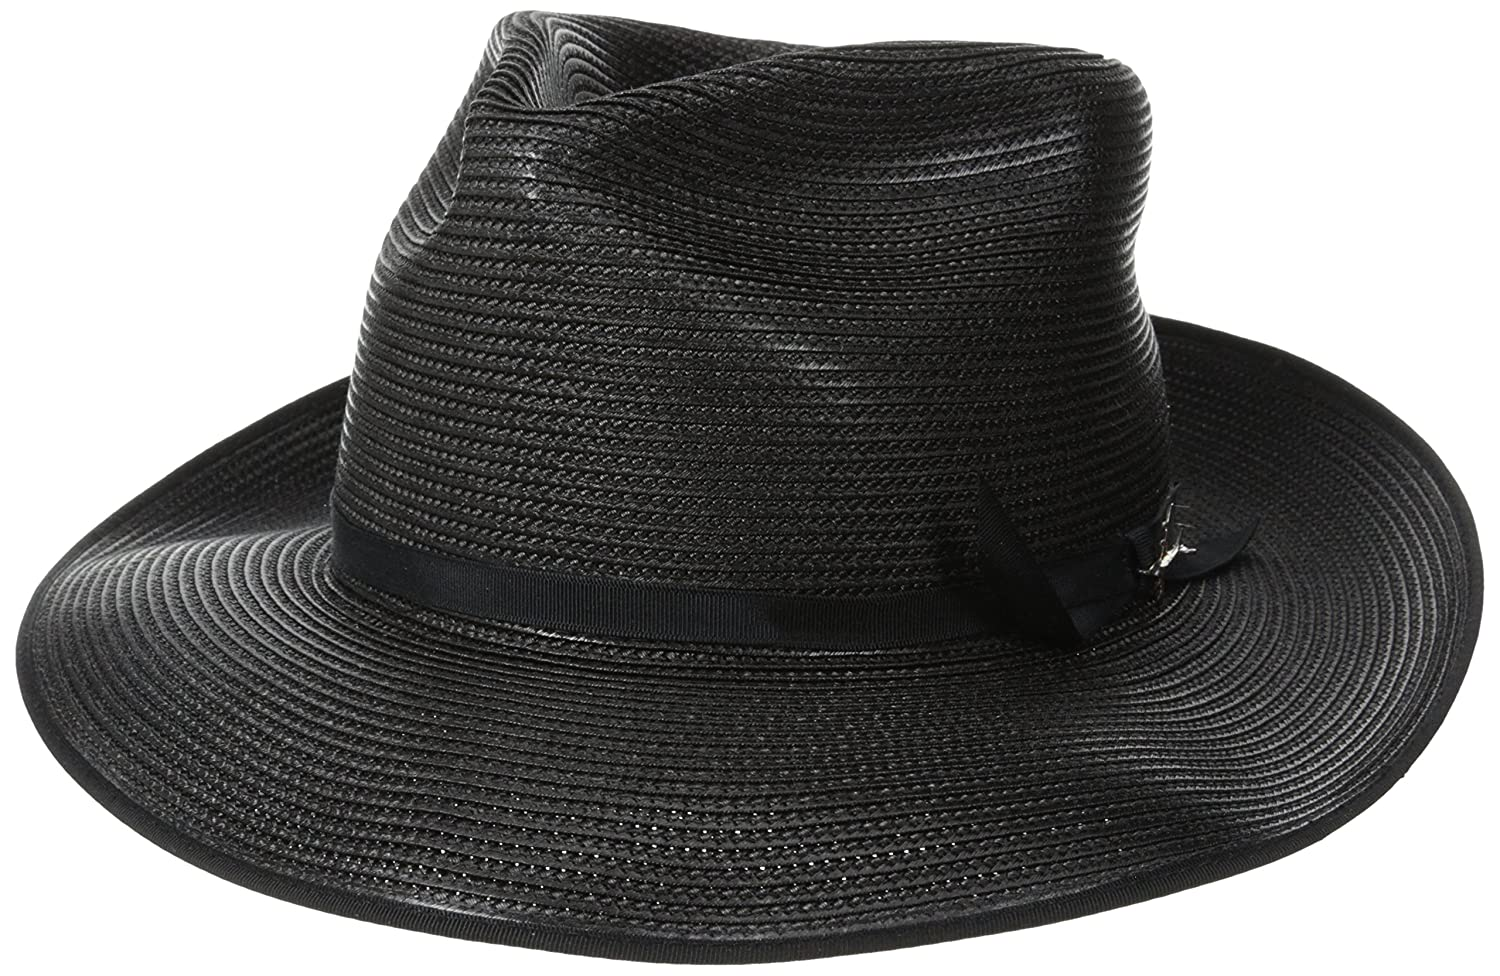 STETSON STRATOLINER BLACK FUR FELT C-CROWN DRESS HAT